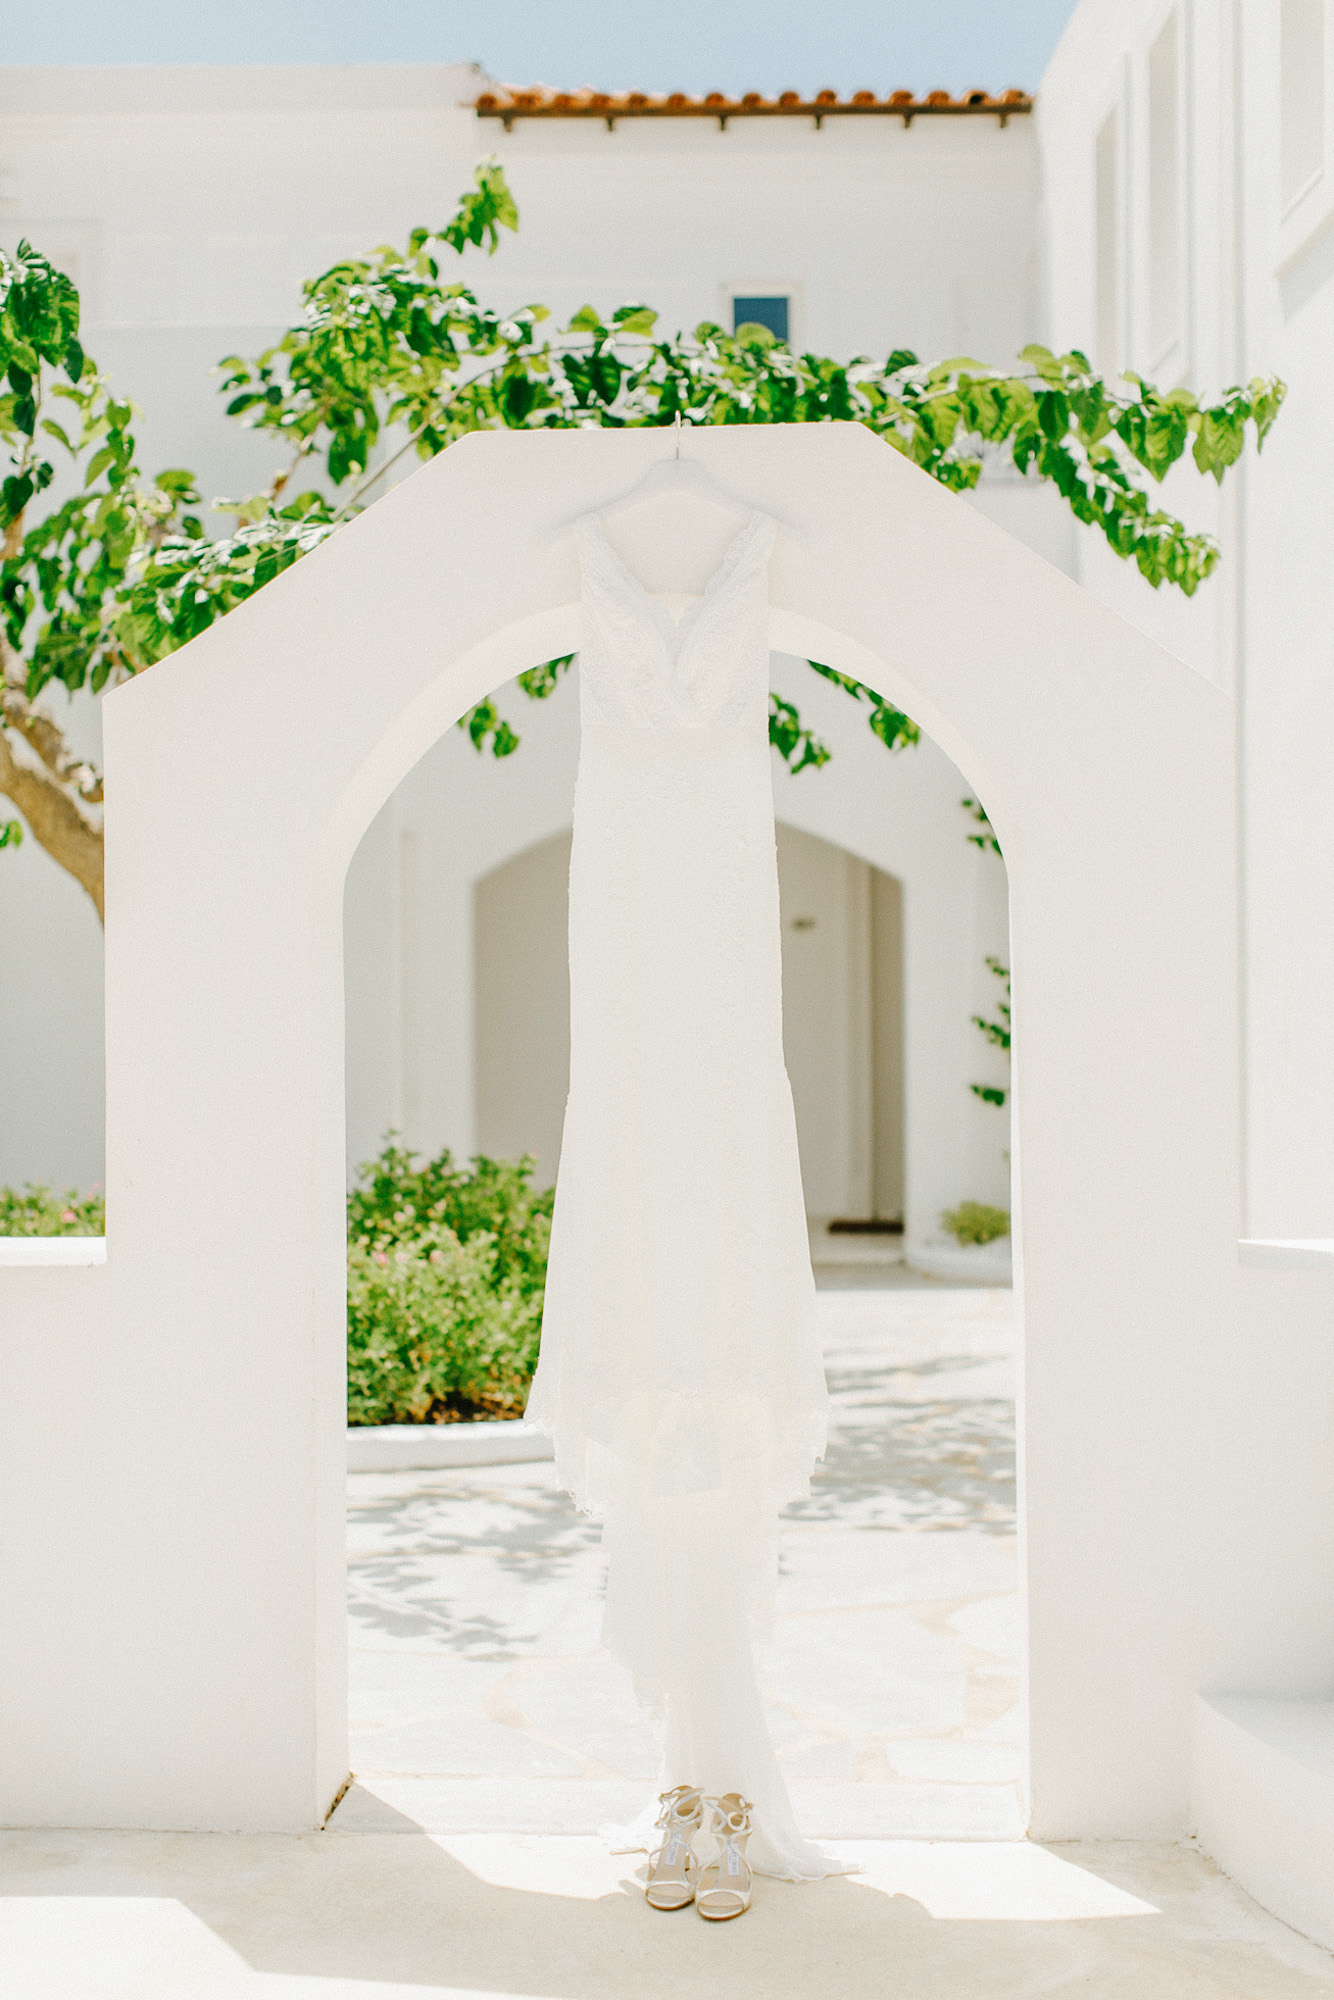 Pronovias bridal wedding dress hanging from a whitewashed doorway in Caramel luxury hotel in Crete.